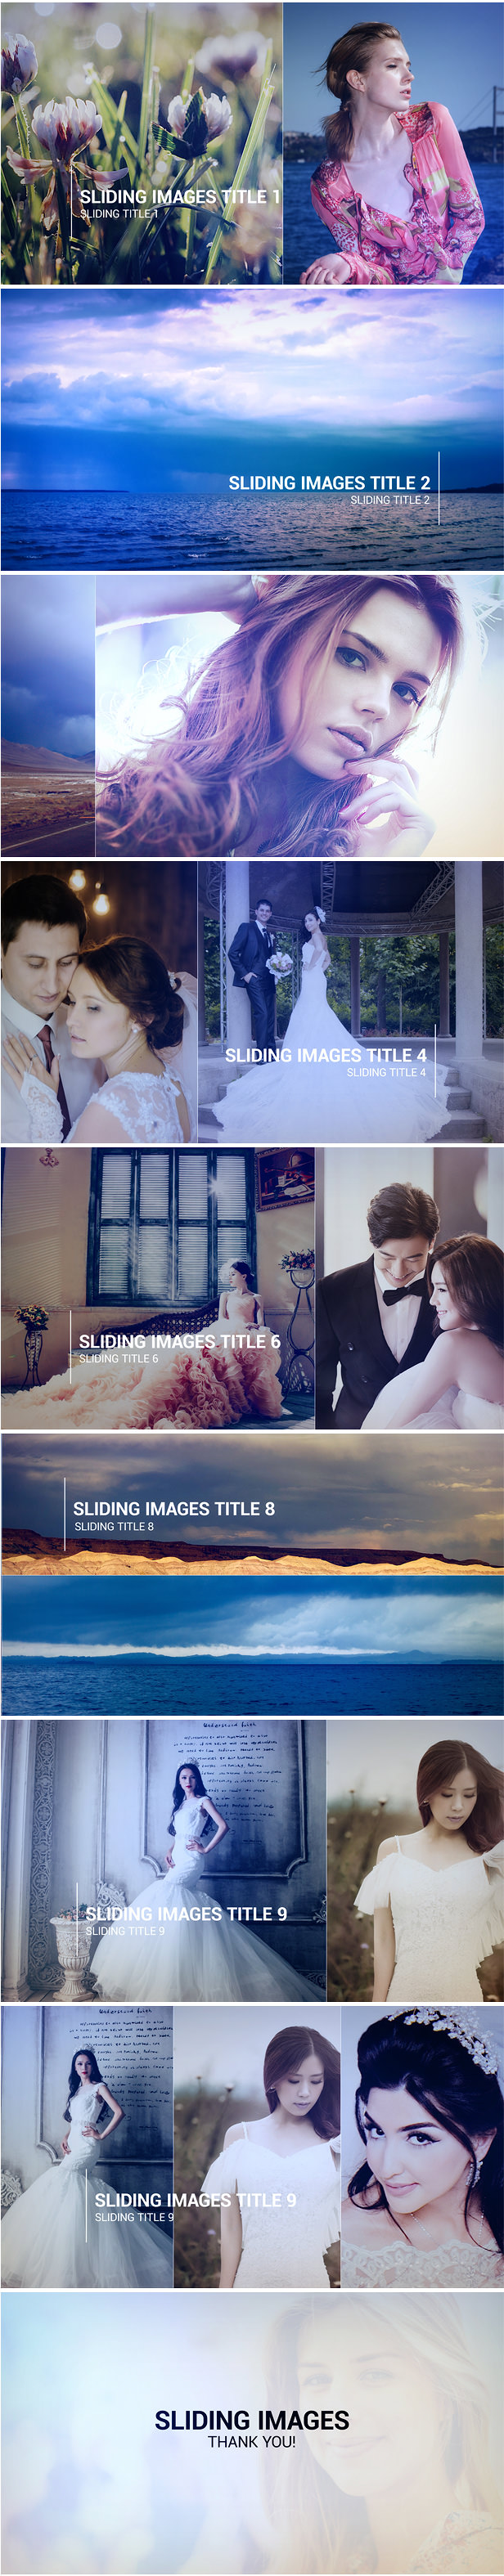 Slideshow Photo Gallery After Effects Template